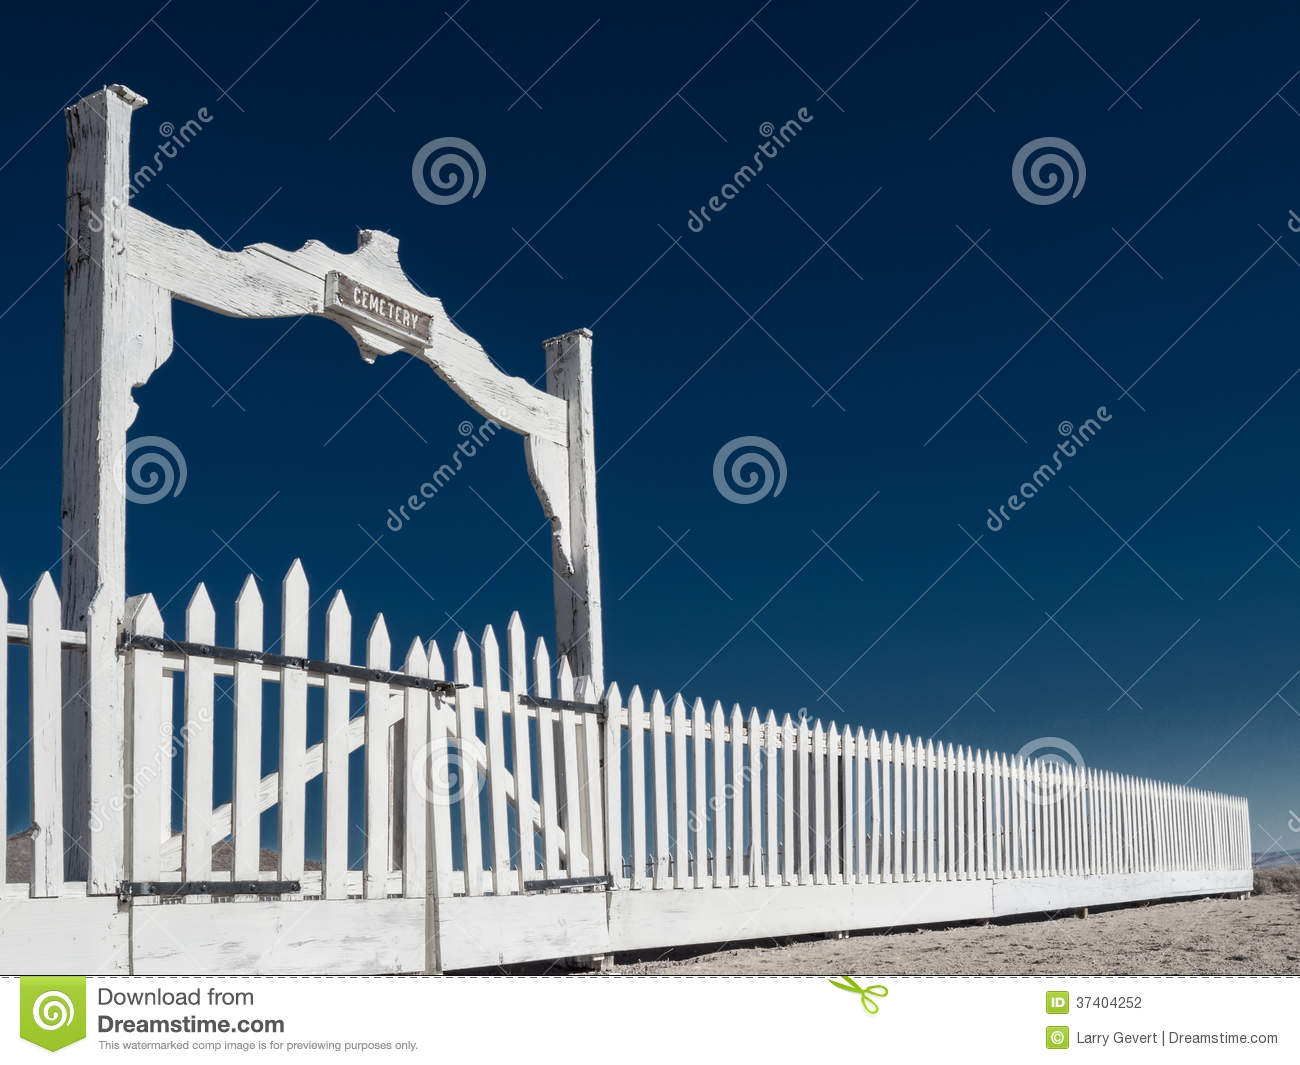 Cemetery fence and gates